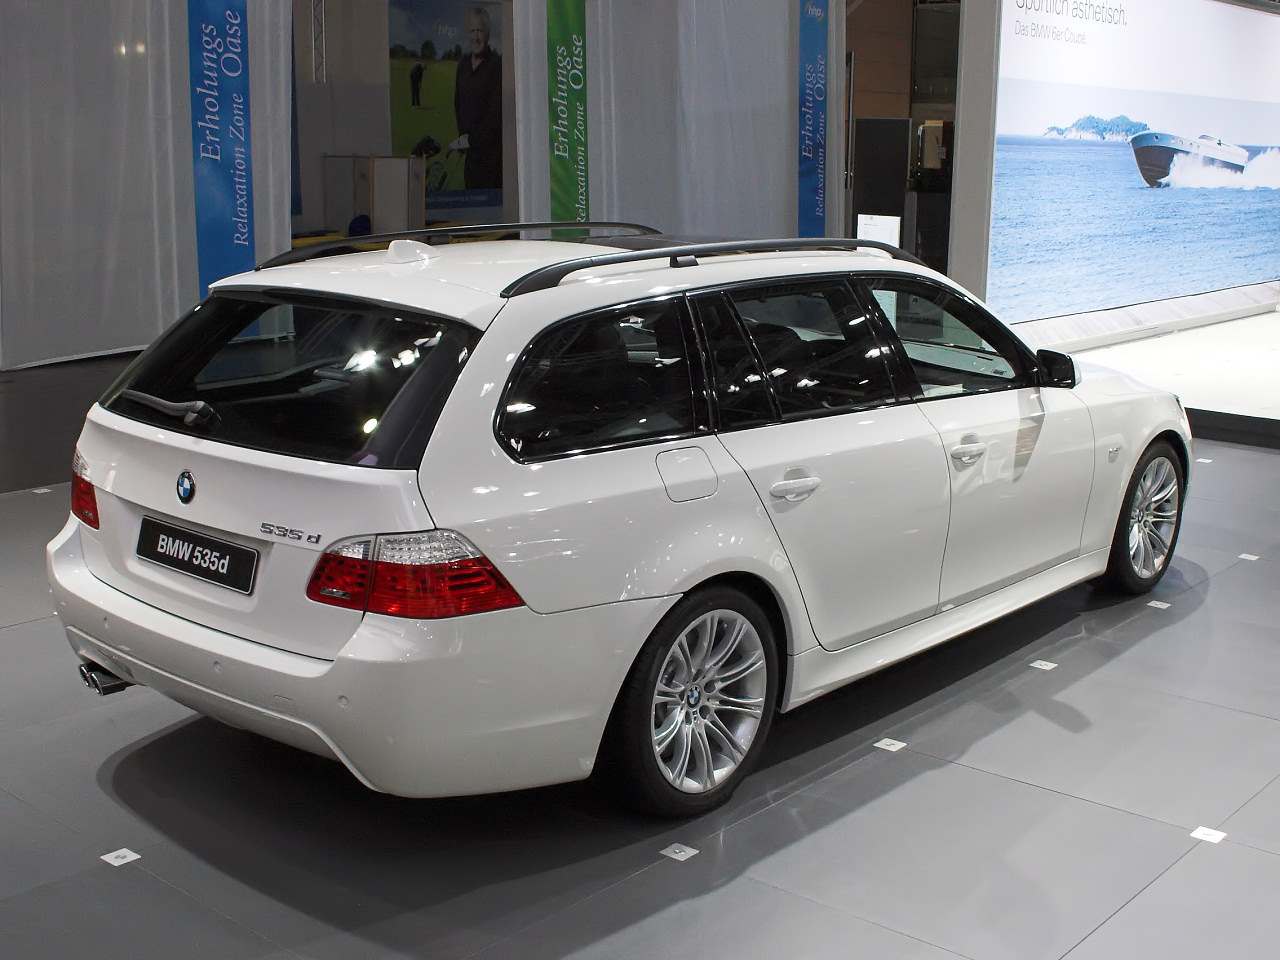 bmw 535d touring picture 2 reviews news specs buy car. Black Bedroom Furniture Sets. Home Design Ideas